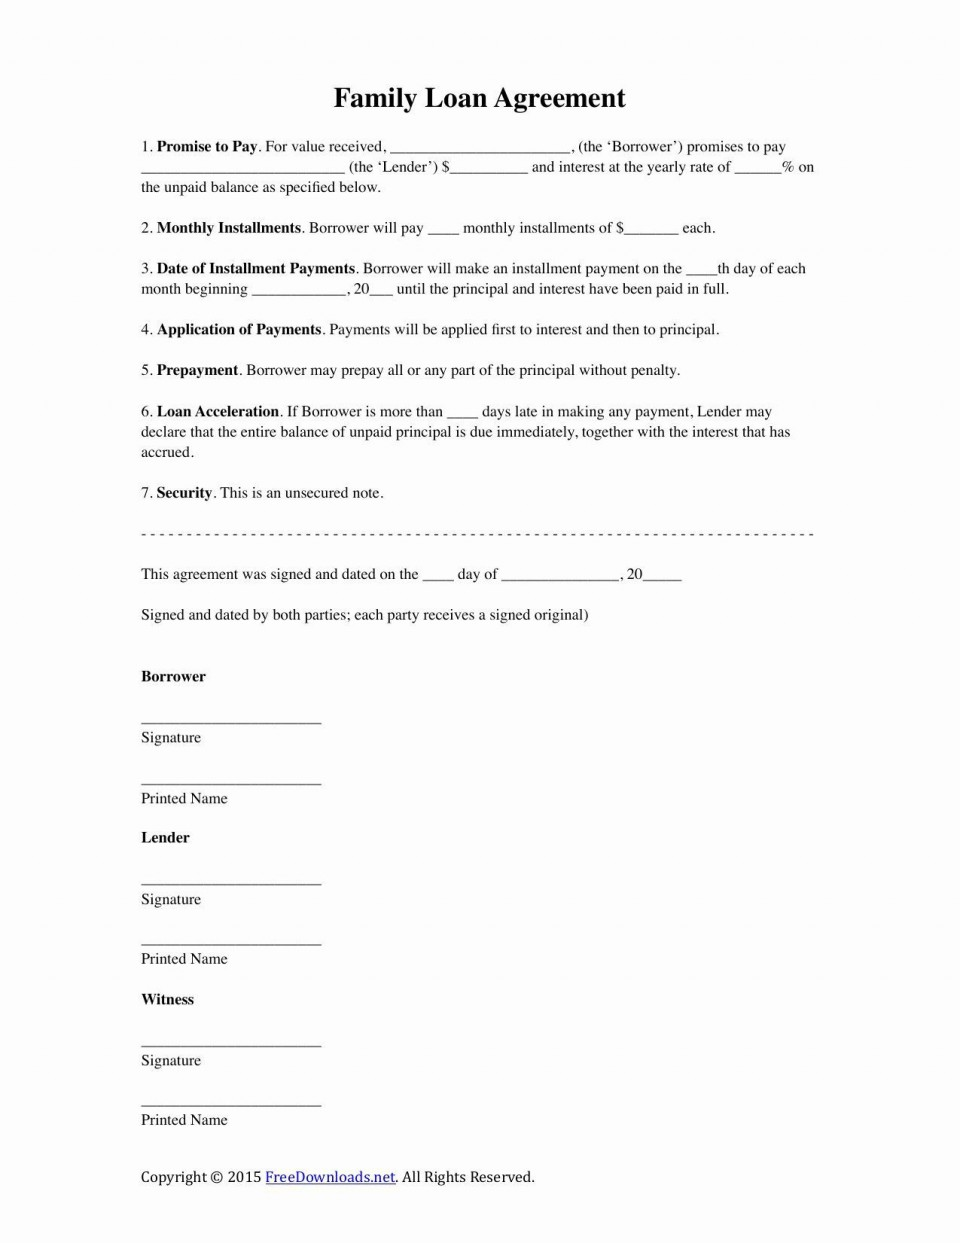 000 Frightening Family Loan Agreement Template Uk Free Picture 960